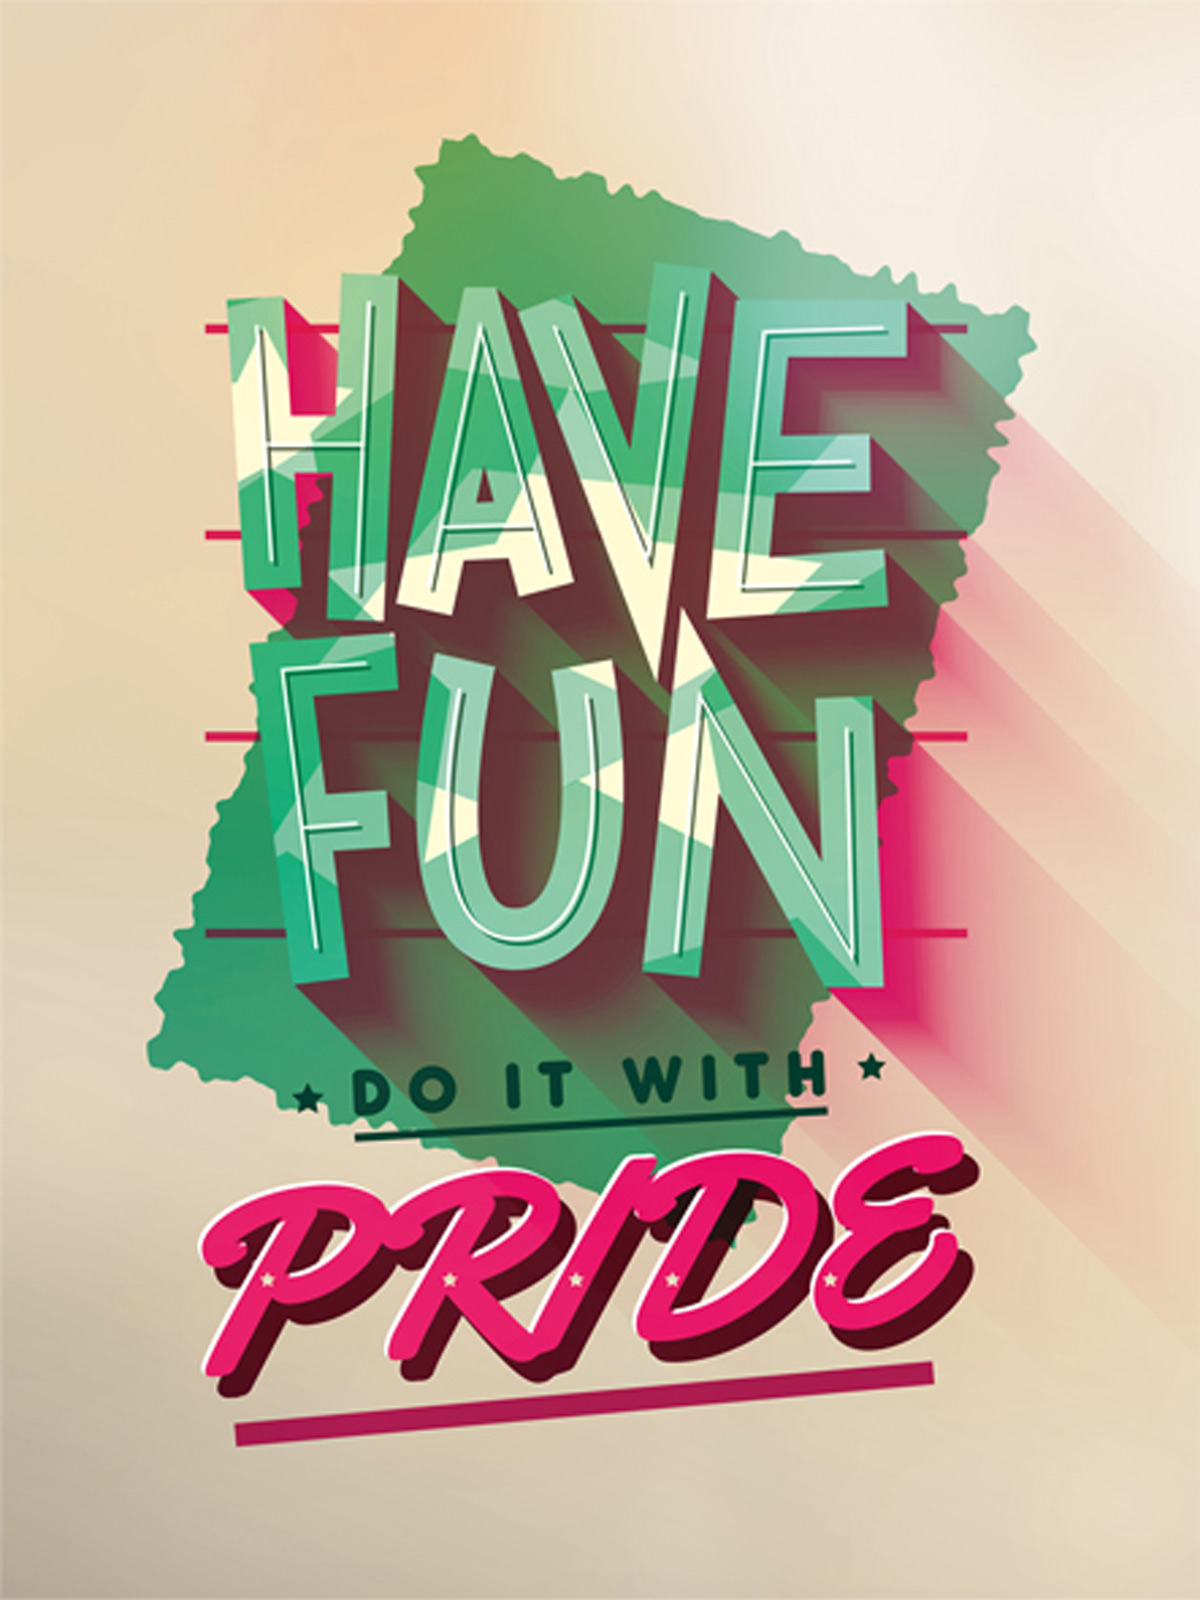 Have fun. Do it with pride.